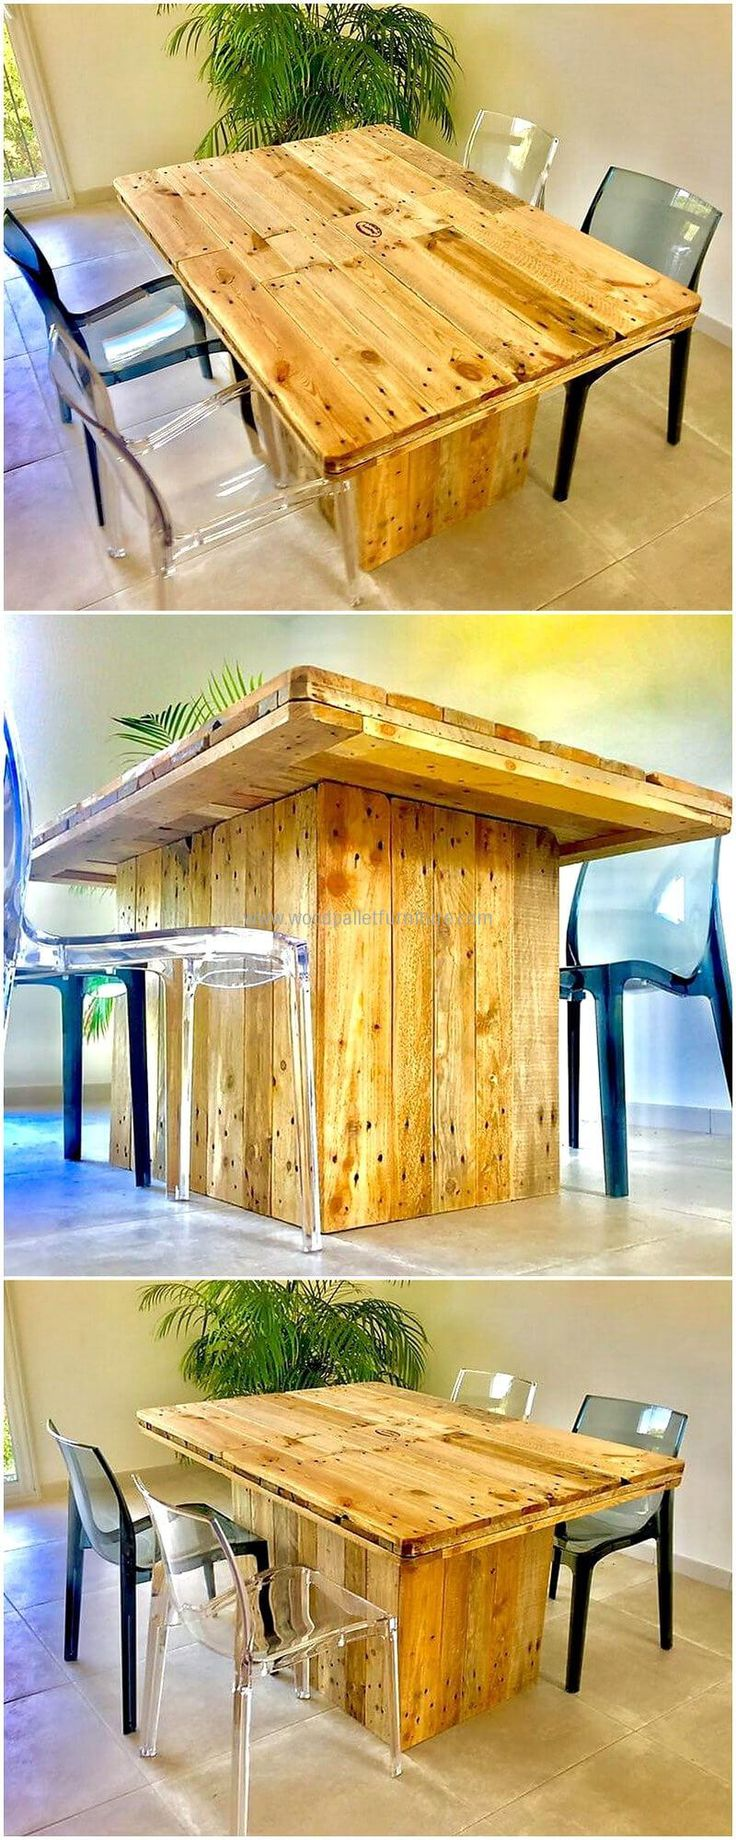 Pallet dining table - Surprising Diy Ideas For Old Used Pallets Dining Table